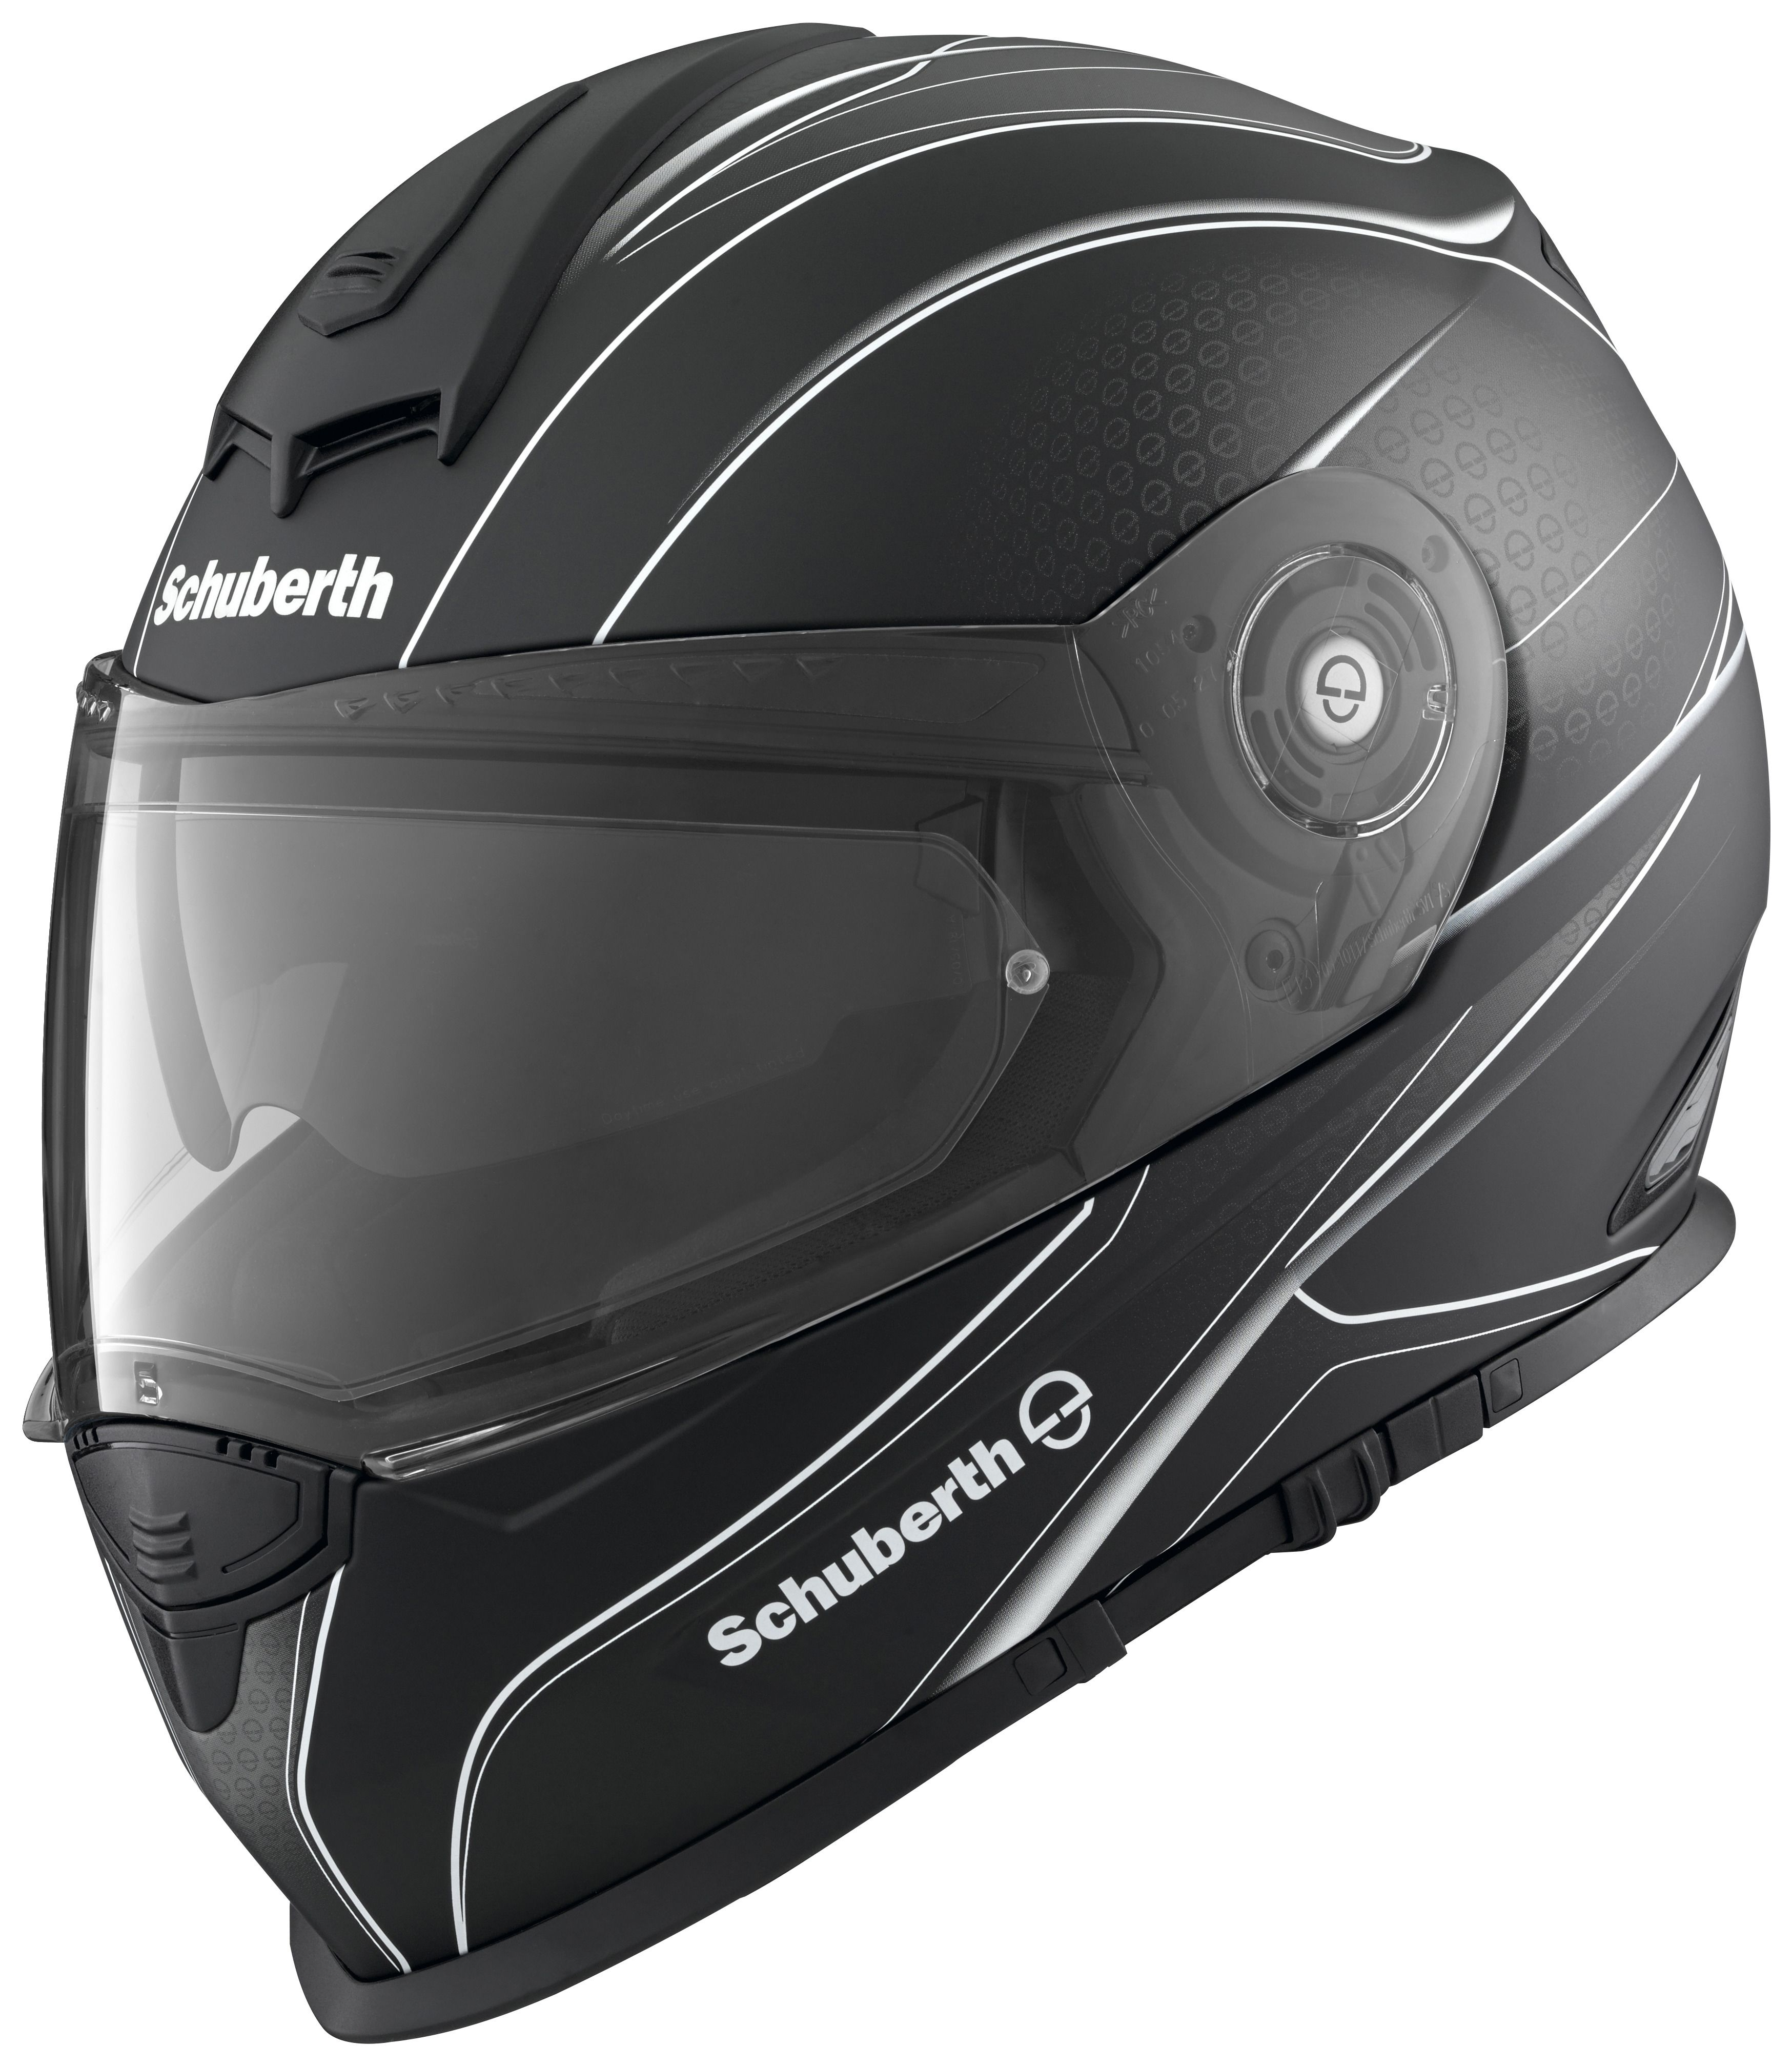 schuberth s2 sport dark wave helmet size xl only revzilla. Black Bedroom Furniture Sets. Home Design Ideas